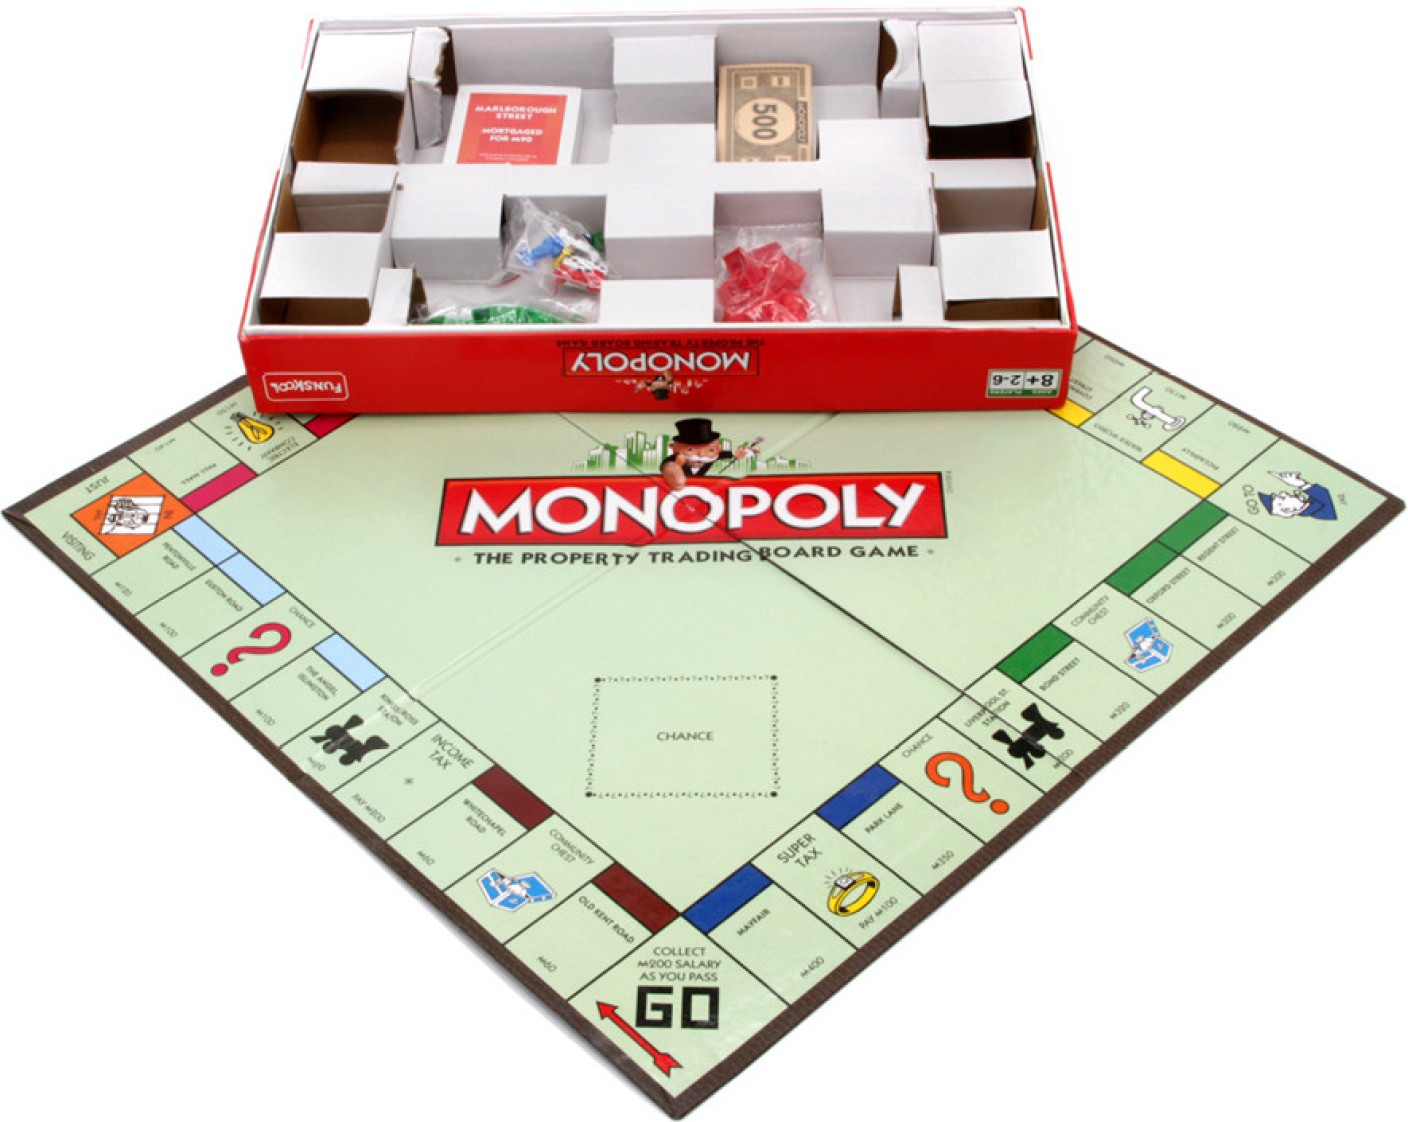 monopoly is a situation in which essay Essay uk offers professional custom essay writing, dissertation writing and coursework writing service our work is high quality, plagiarism-free and delivered on time essay uk is a trading name of student academic services limited , a company registered in england and wales under company number 08866484.